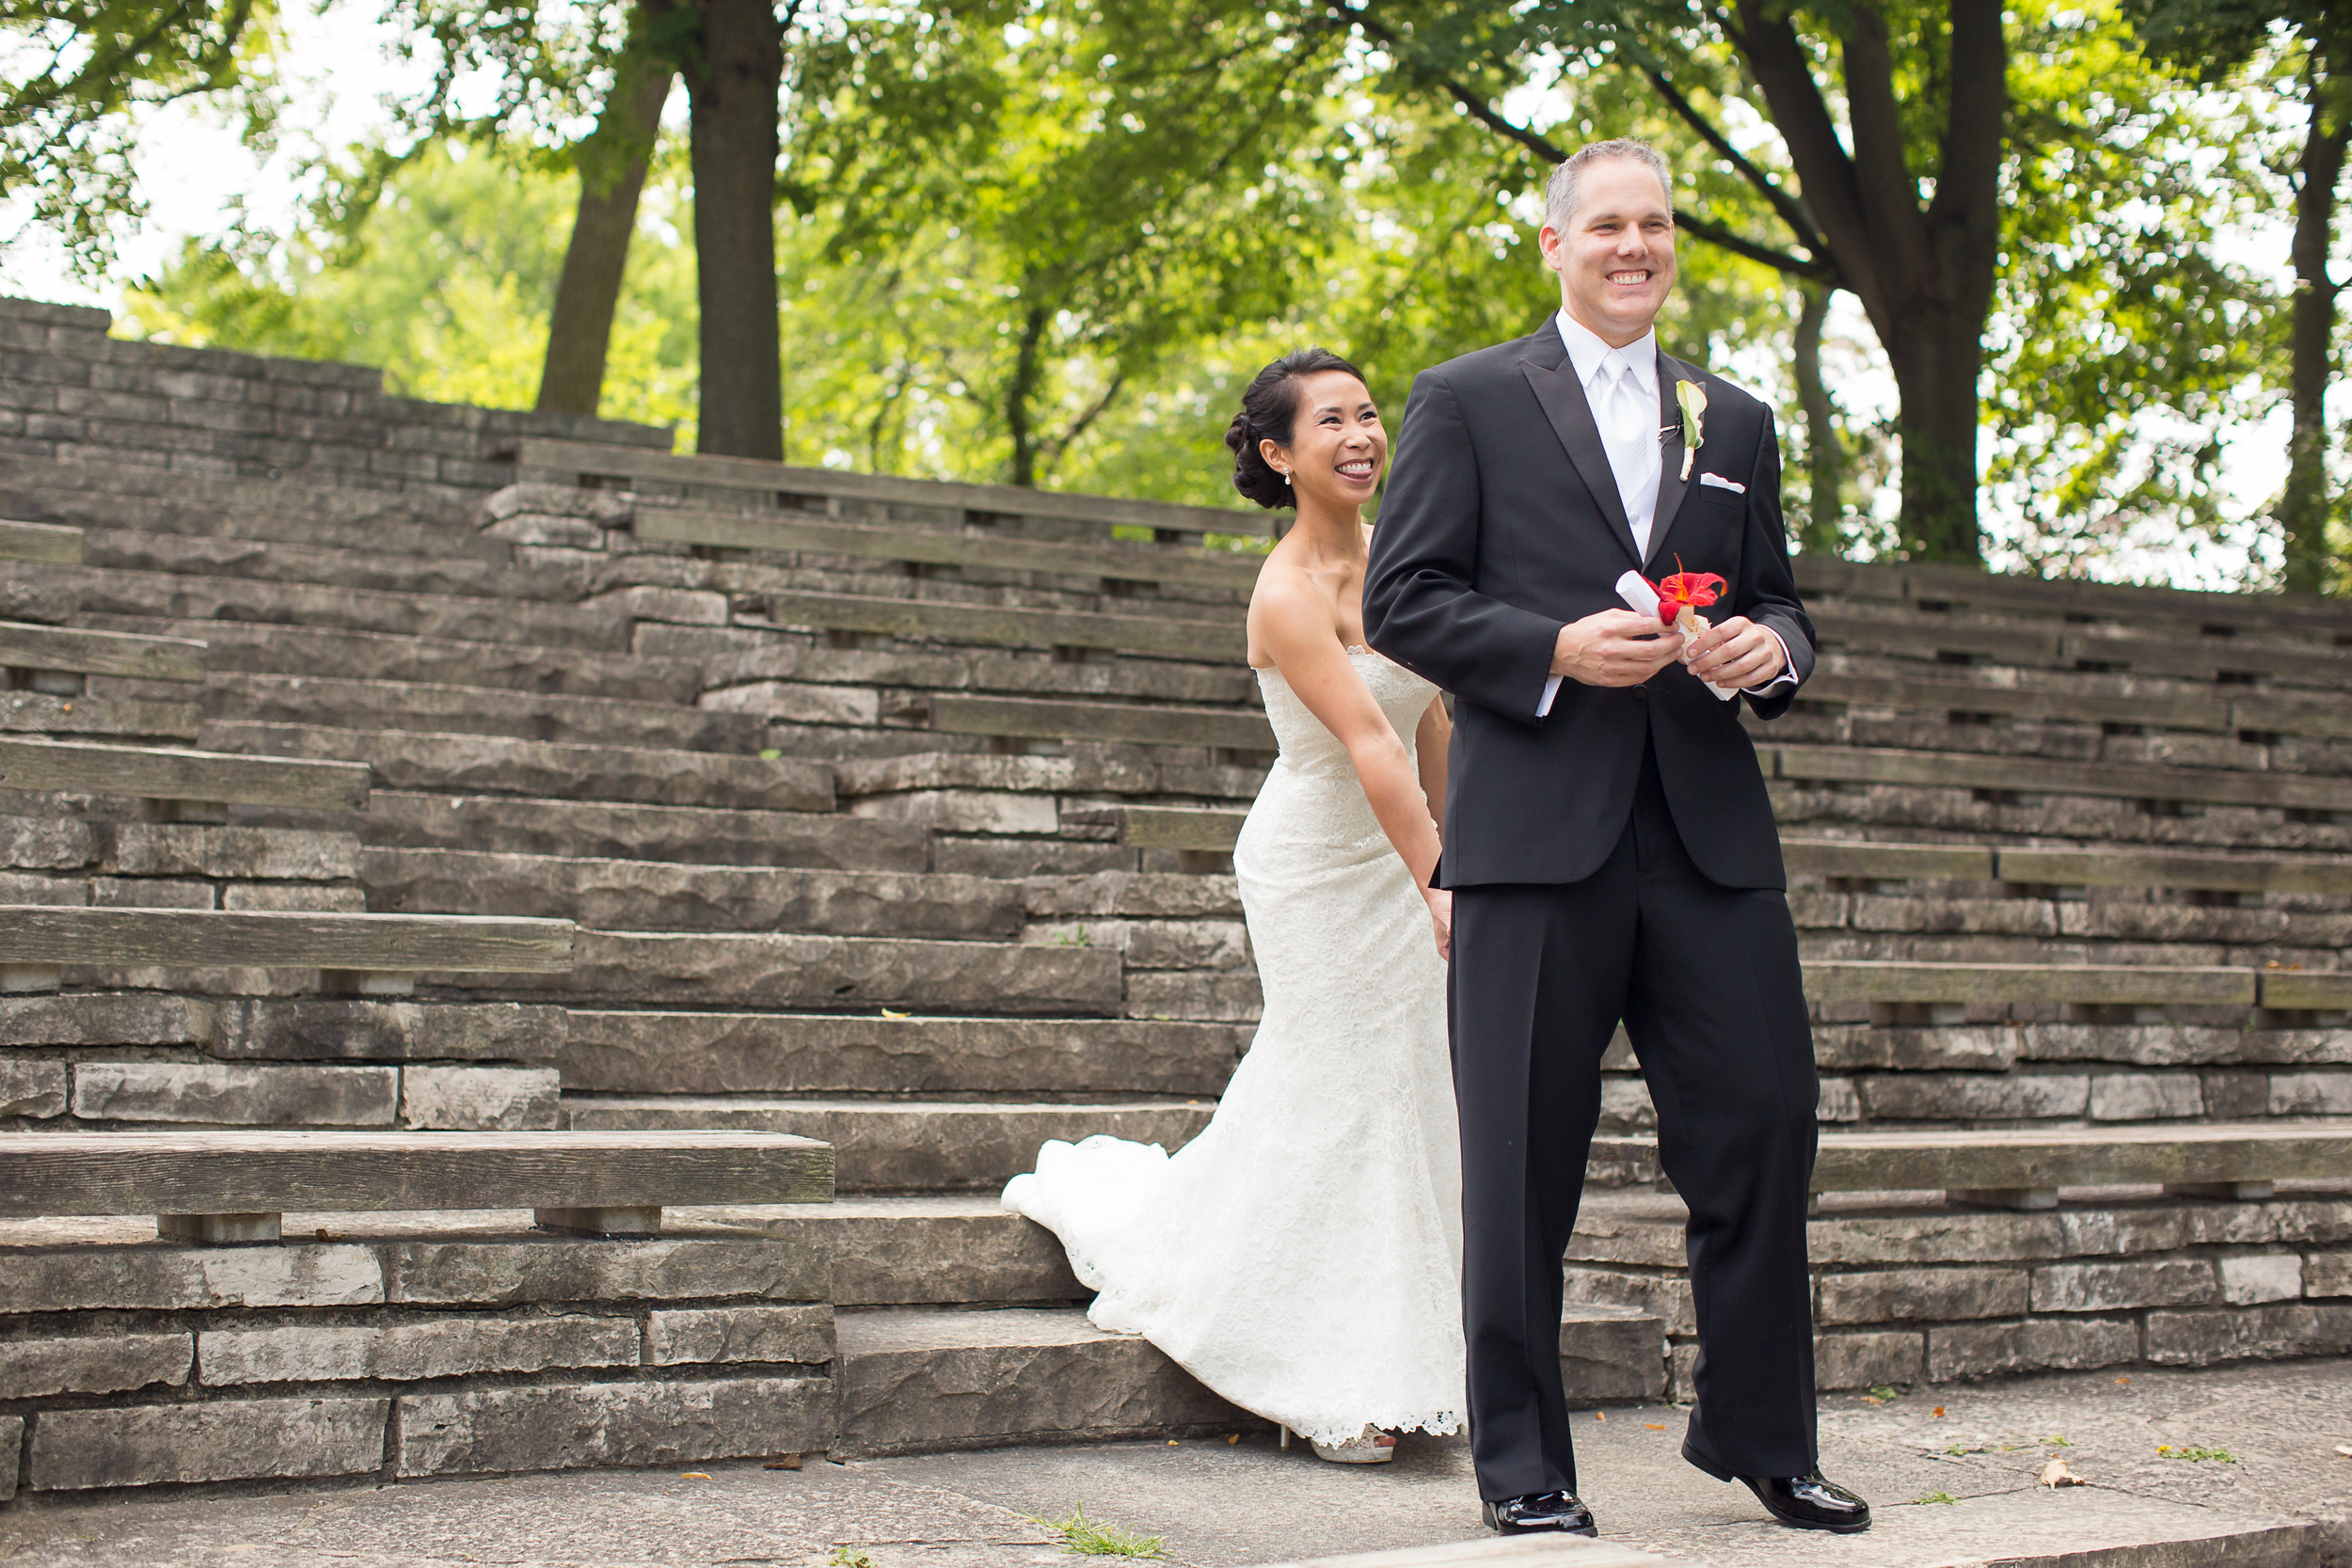 Clover Events | Sunny & Charming Wedding | Photos by Moonhouse Productions